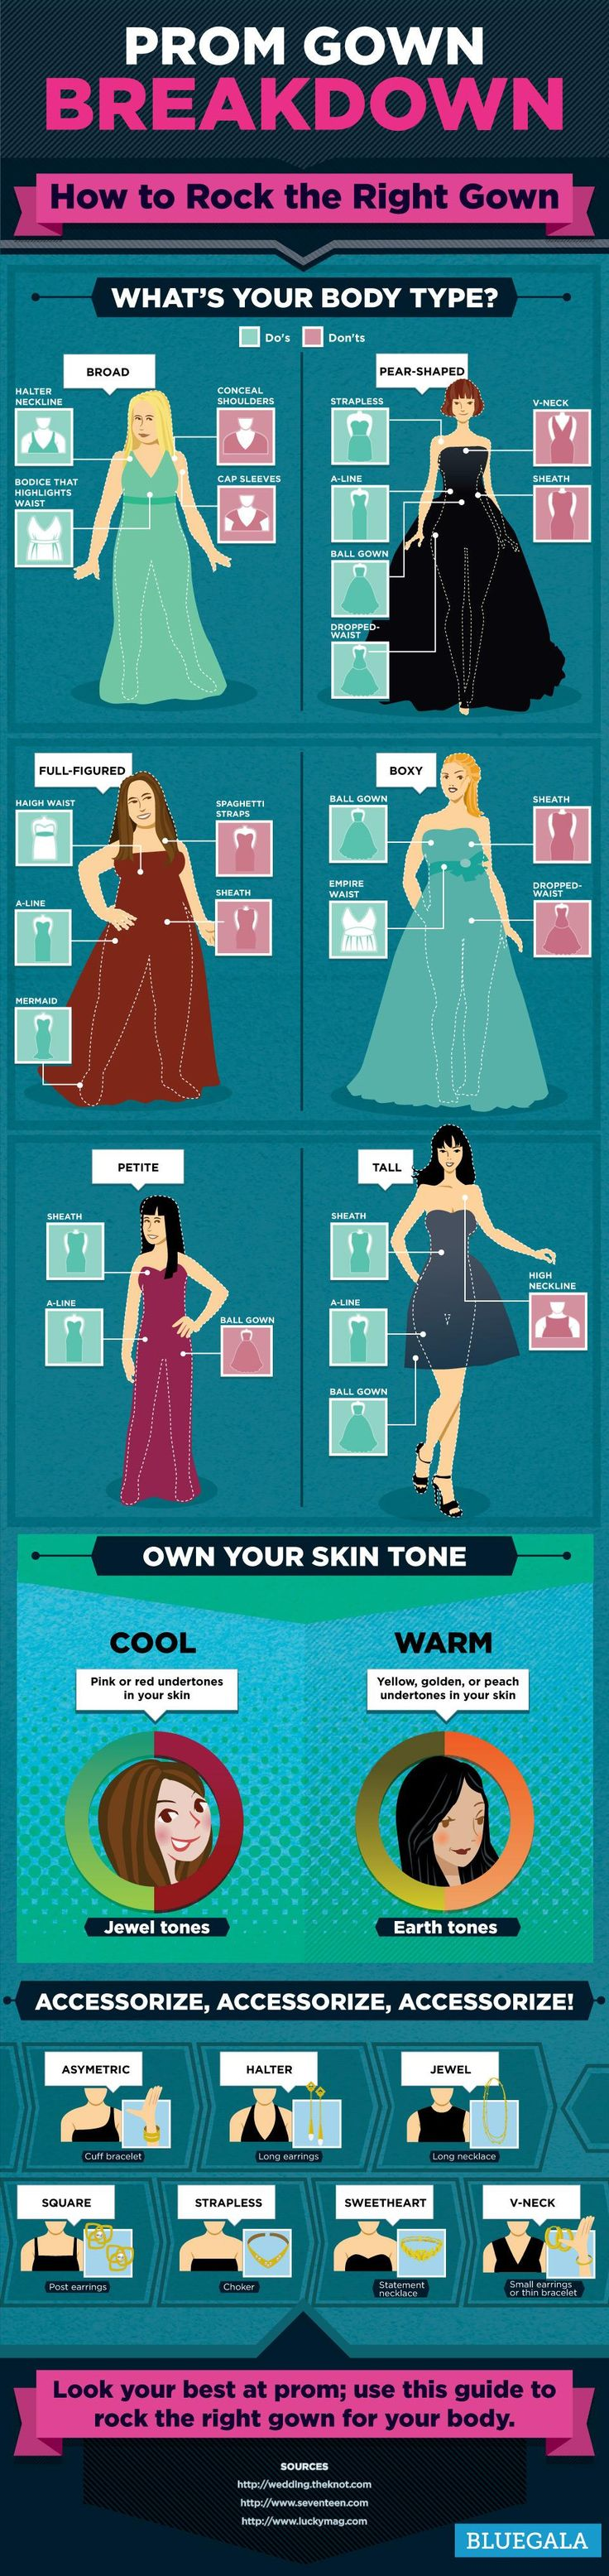 Prom Gown Breakdown: How to Rock the Right Gown Infographic...or just wear what you feel beautiful in!